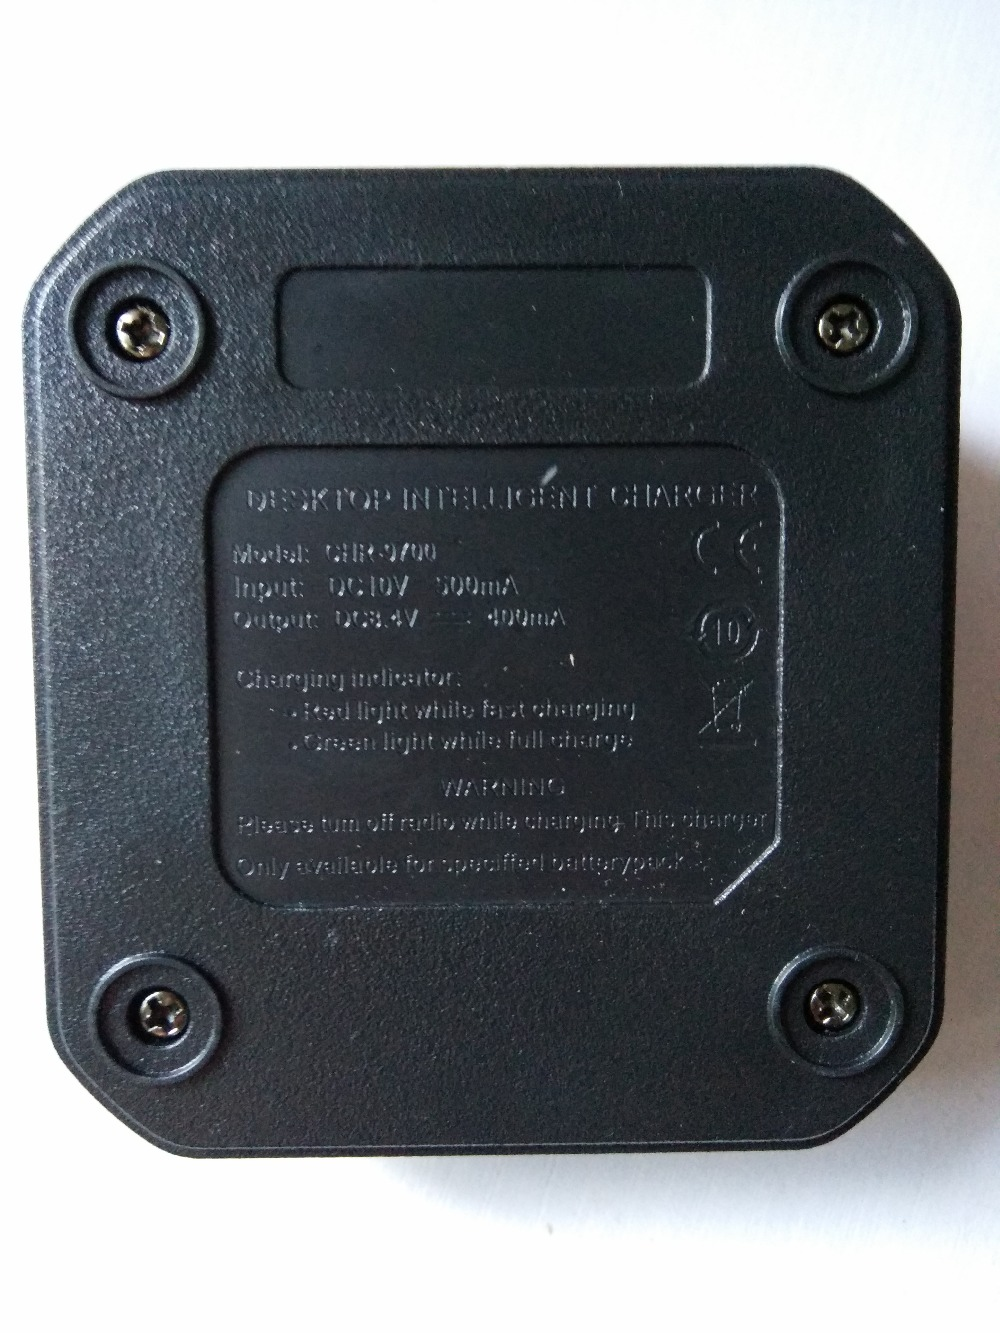 Image 2 - Charger for A58 R760 walkie talkie two way radio-in Walkie Talkie from Cellphones & Telecommunications